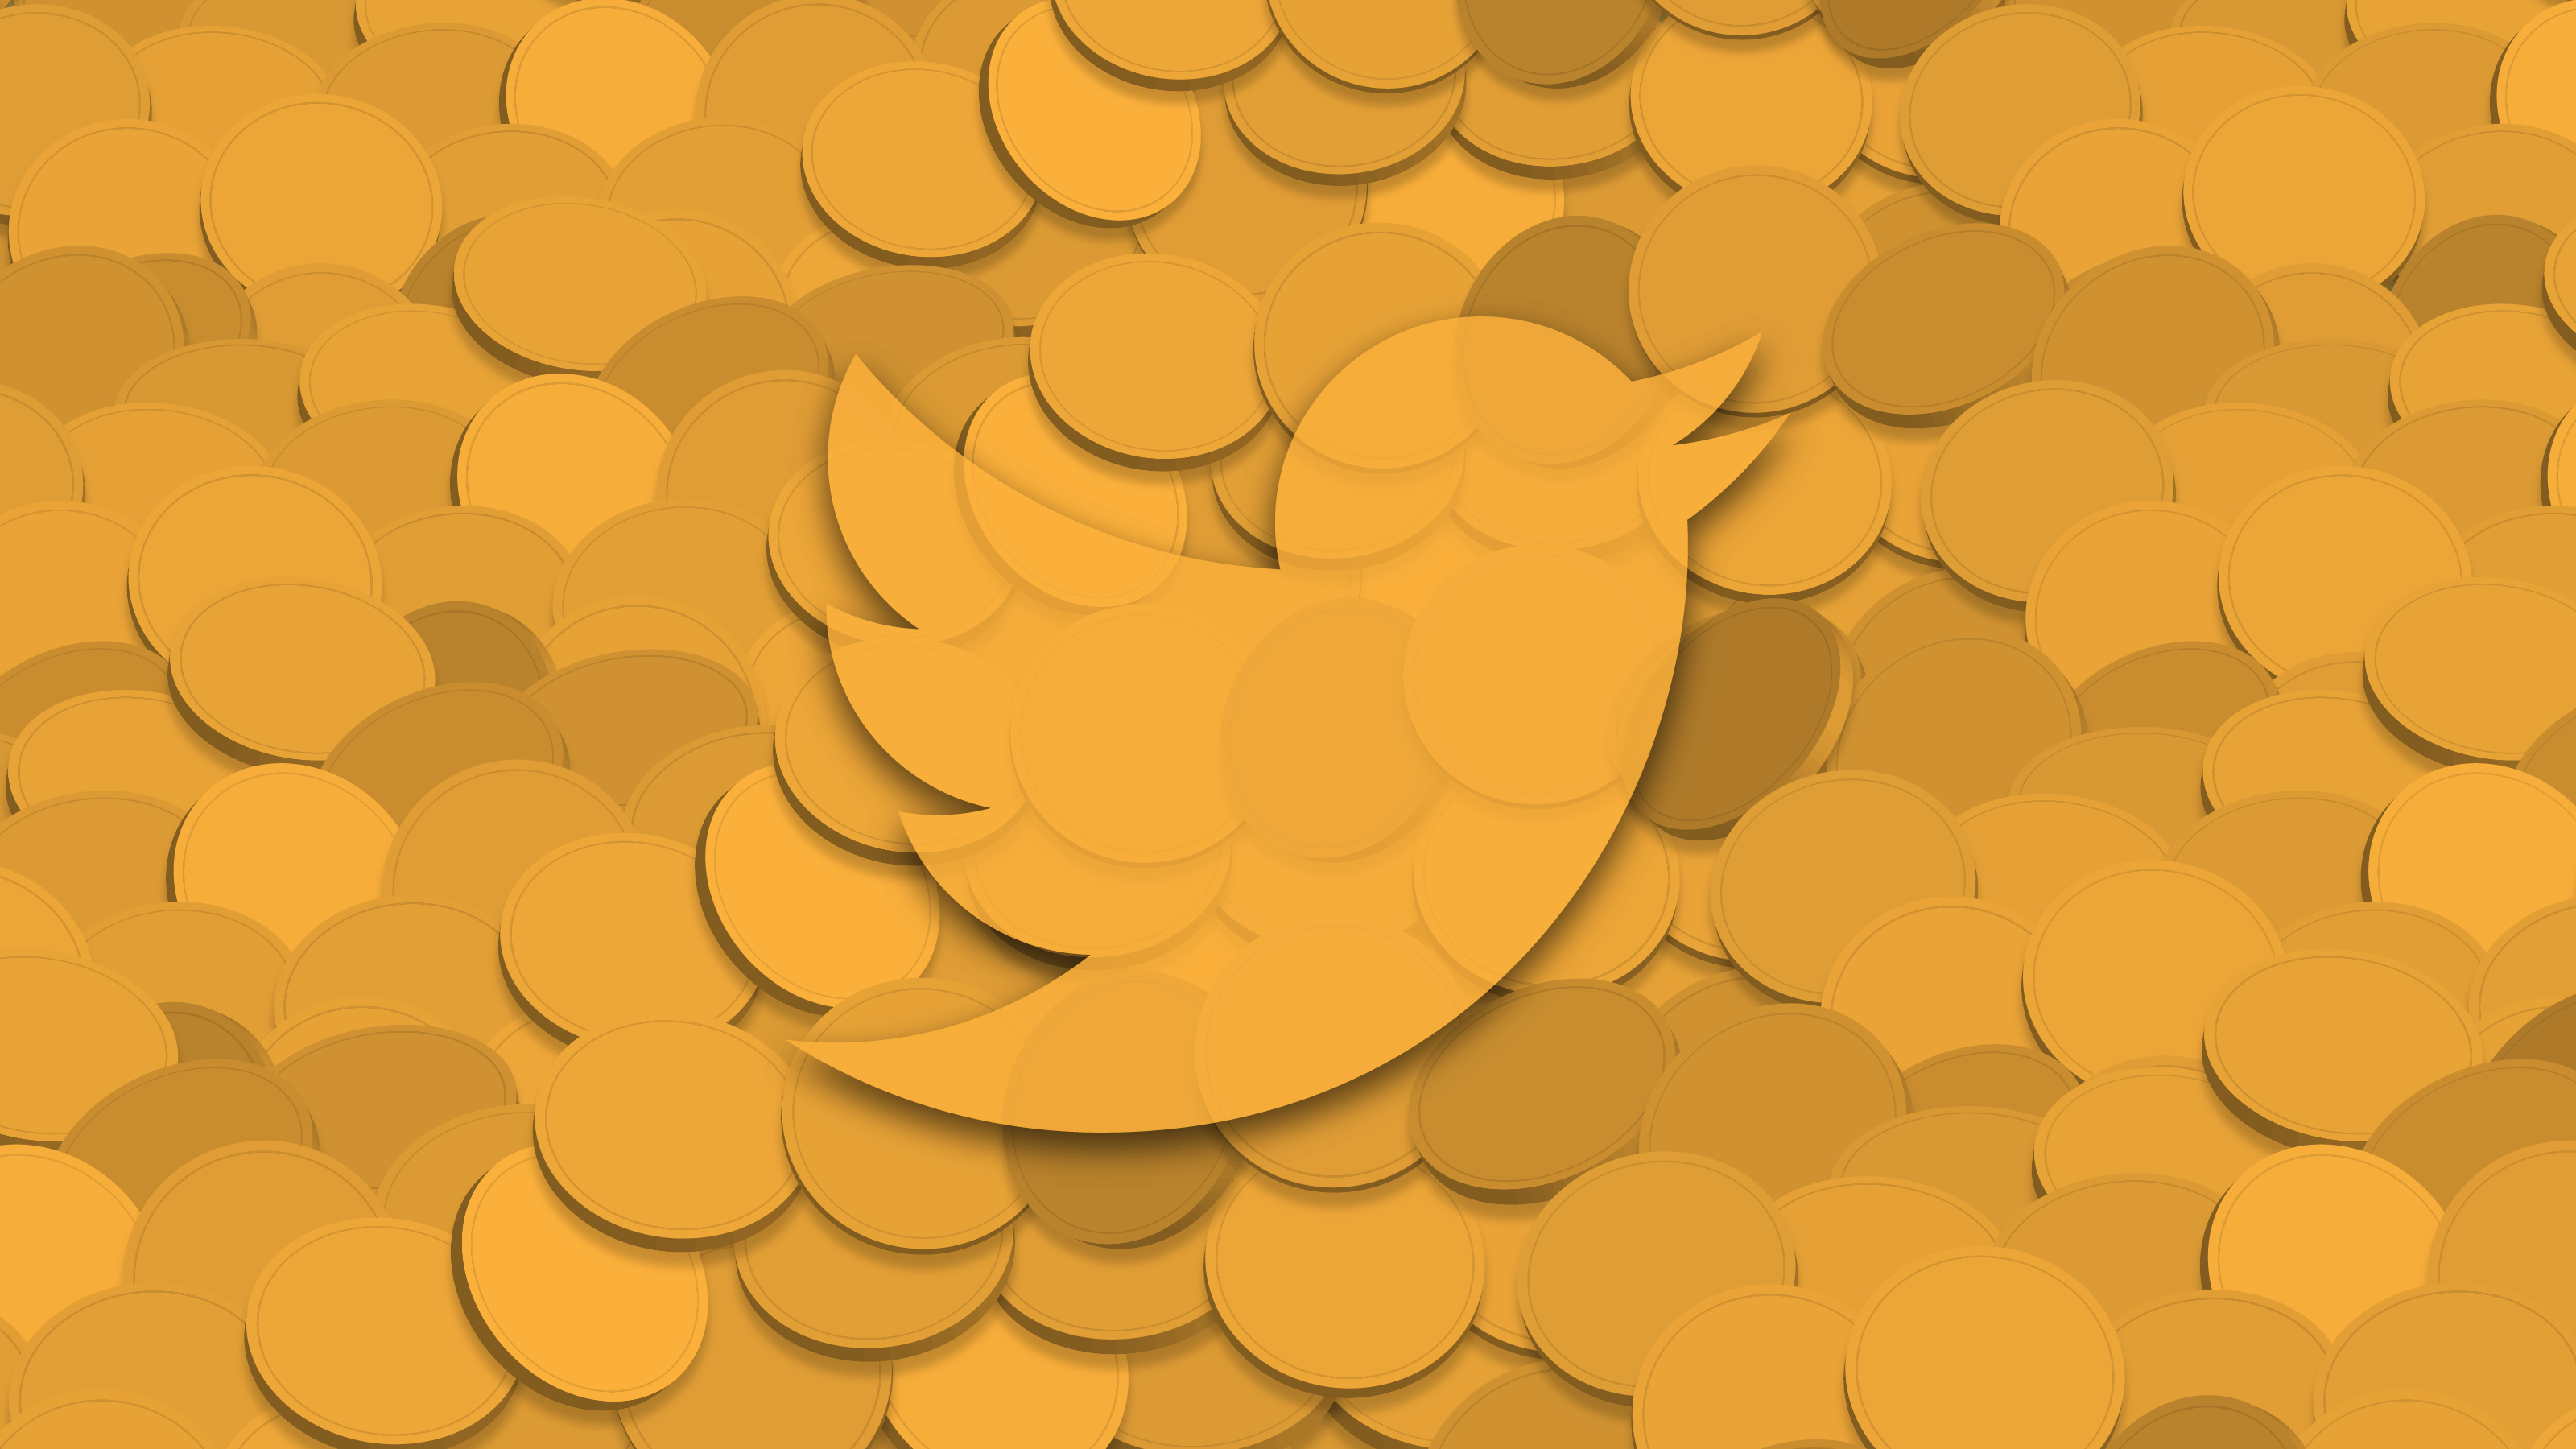 Twitter to ban cryptocurrency ads from Tuesday as online crackdown widens